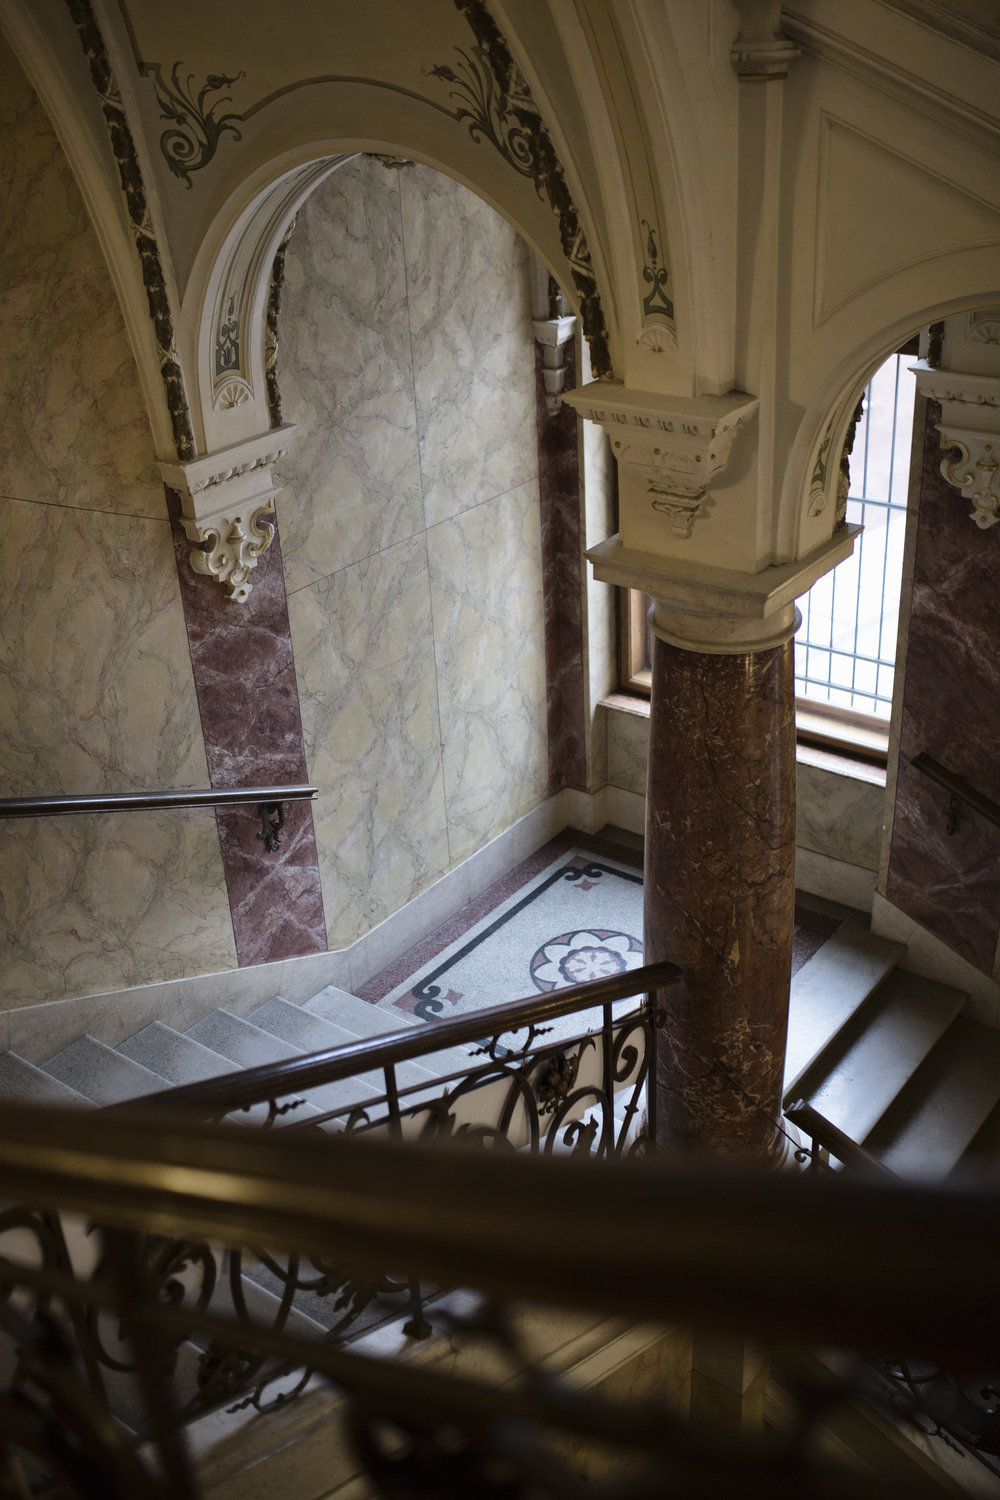 The three-legged staircase with columns of polished red marble is a dominant feature of the building. The railing consists of bronzed blacksmith's bars curled into spirals, finished with scattered acanthus leaves and small rosettes.